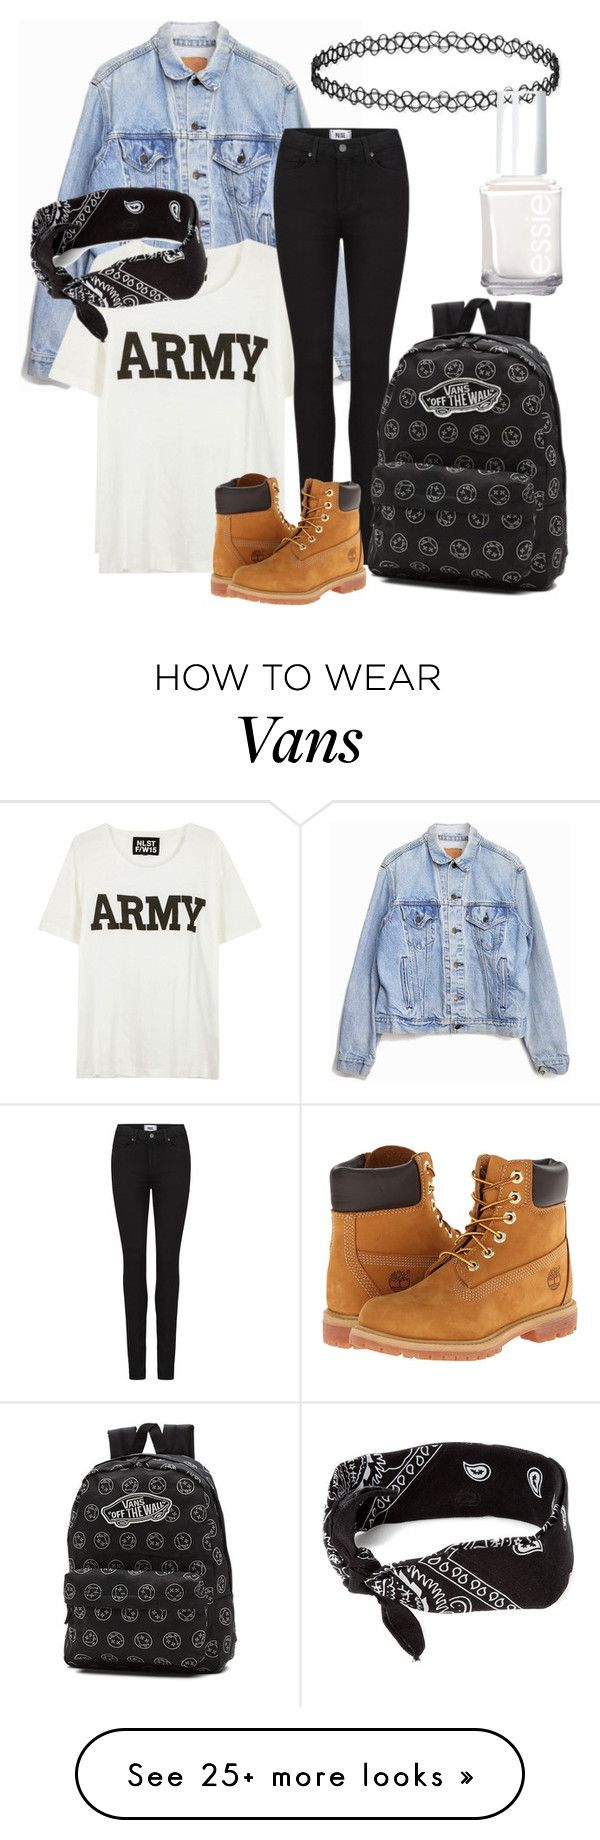 """good look"" by vanessa150802 on Polyvore featuring NLST, Levi's, Paige Denim, Timberland, Vans, claire's and Essie"